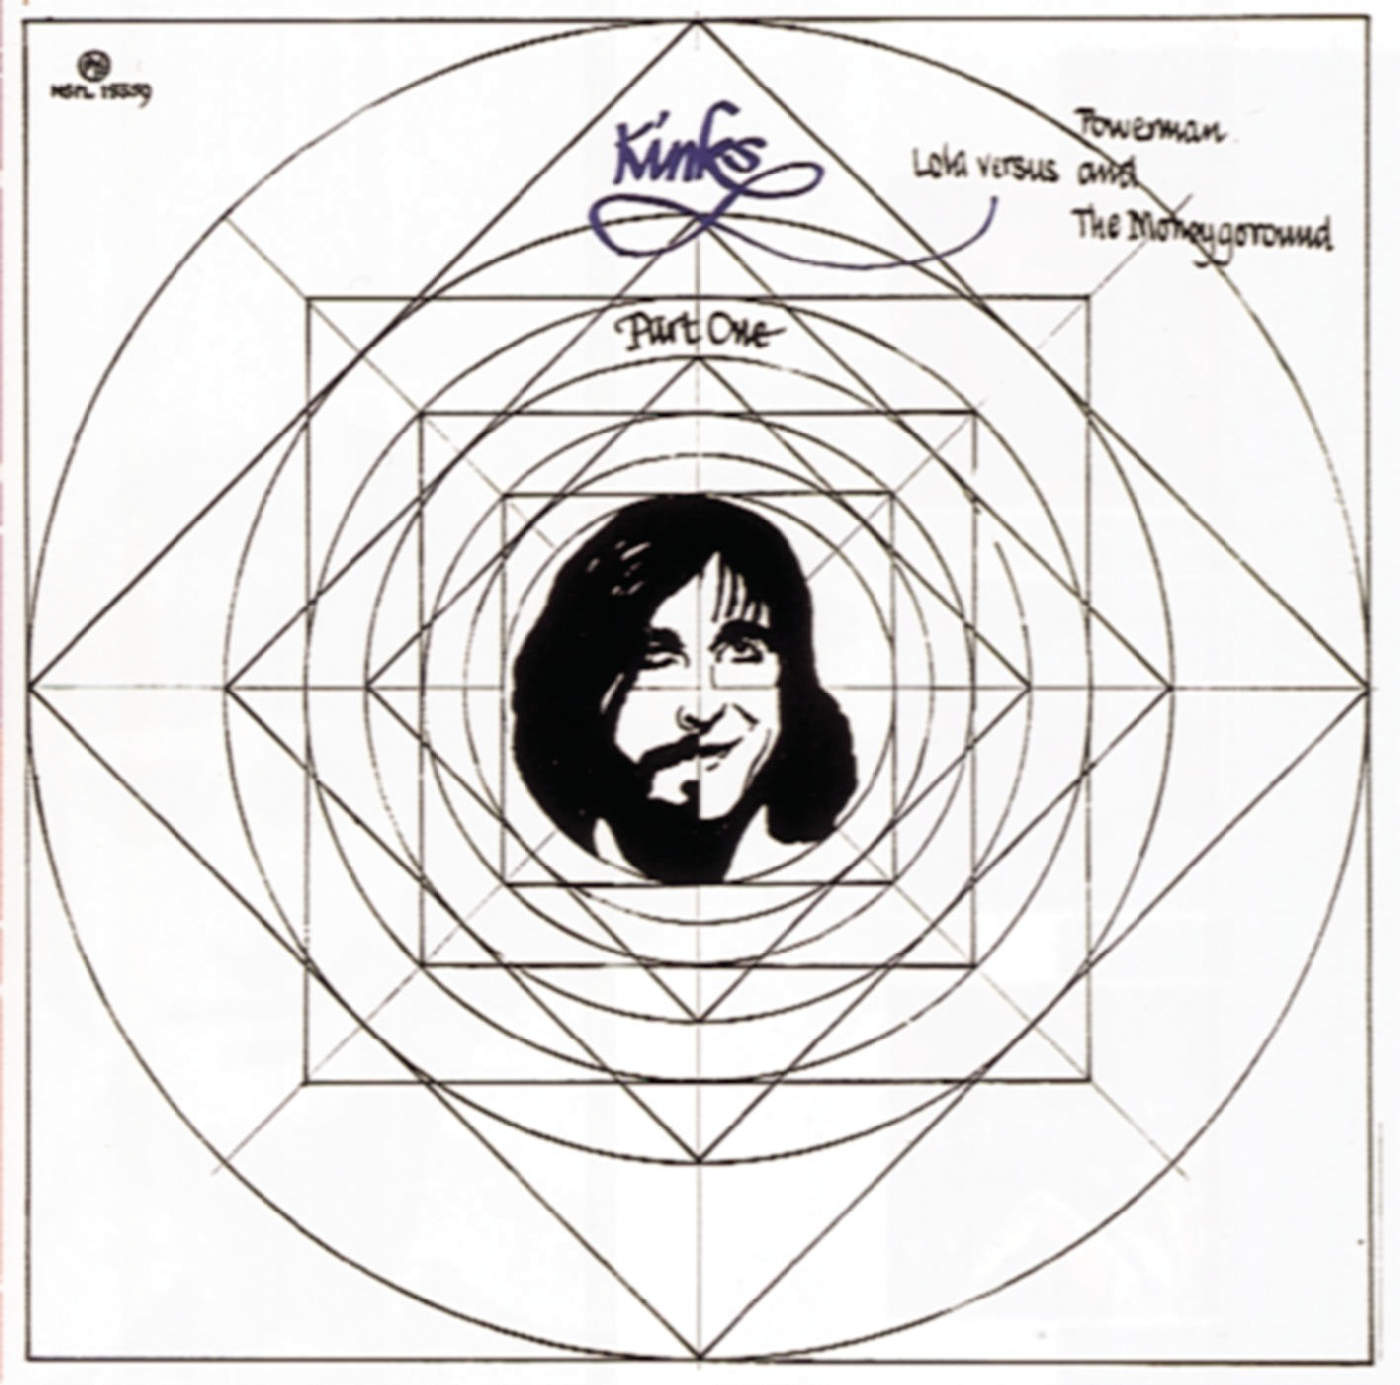 Lola (Remastered) by The Kinks